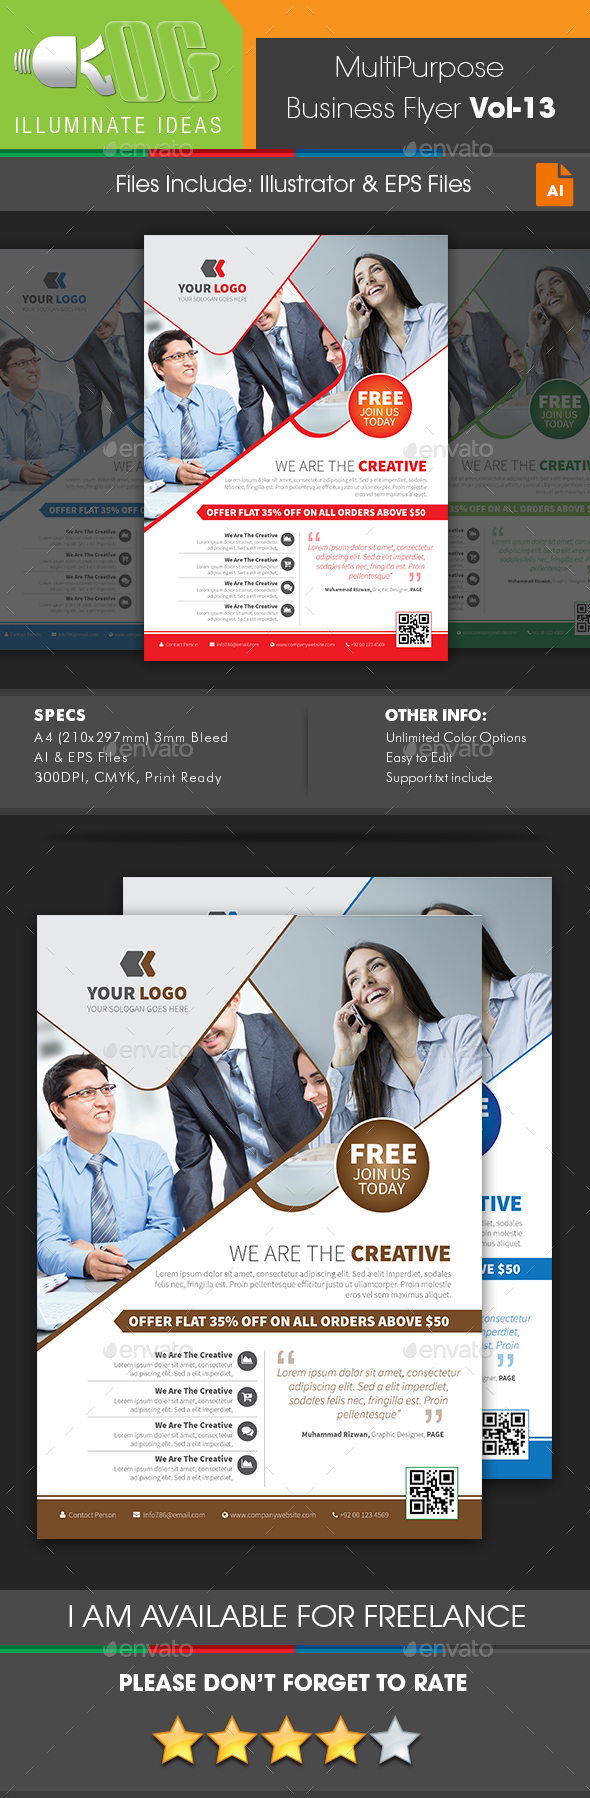 Multipurpose Business Flyer Template Vol-13 - Corporate Flyers